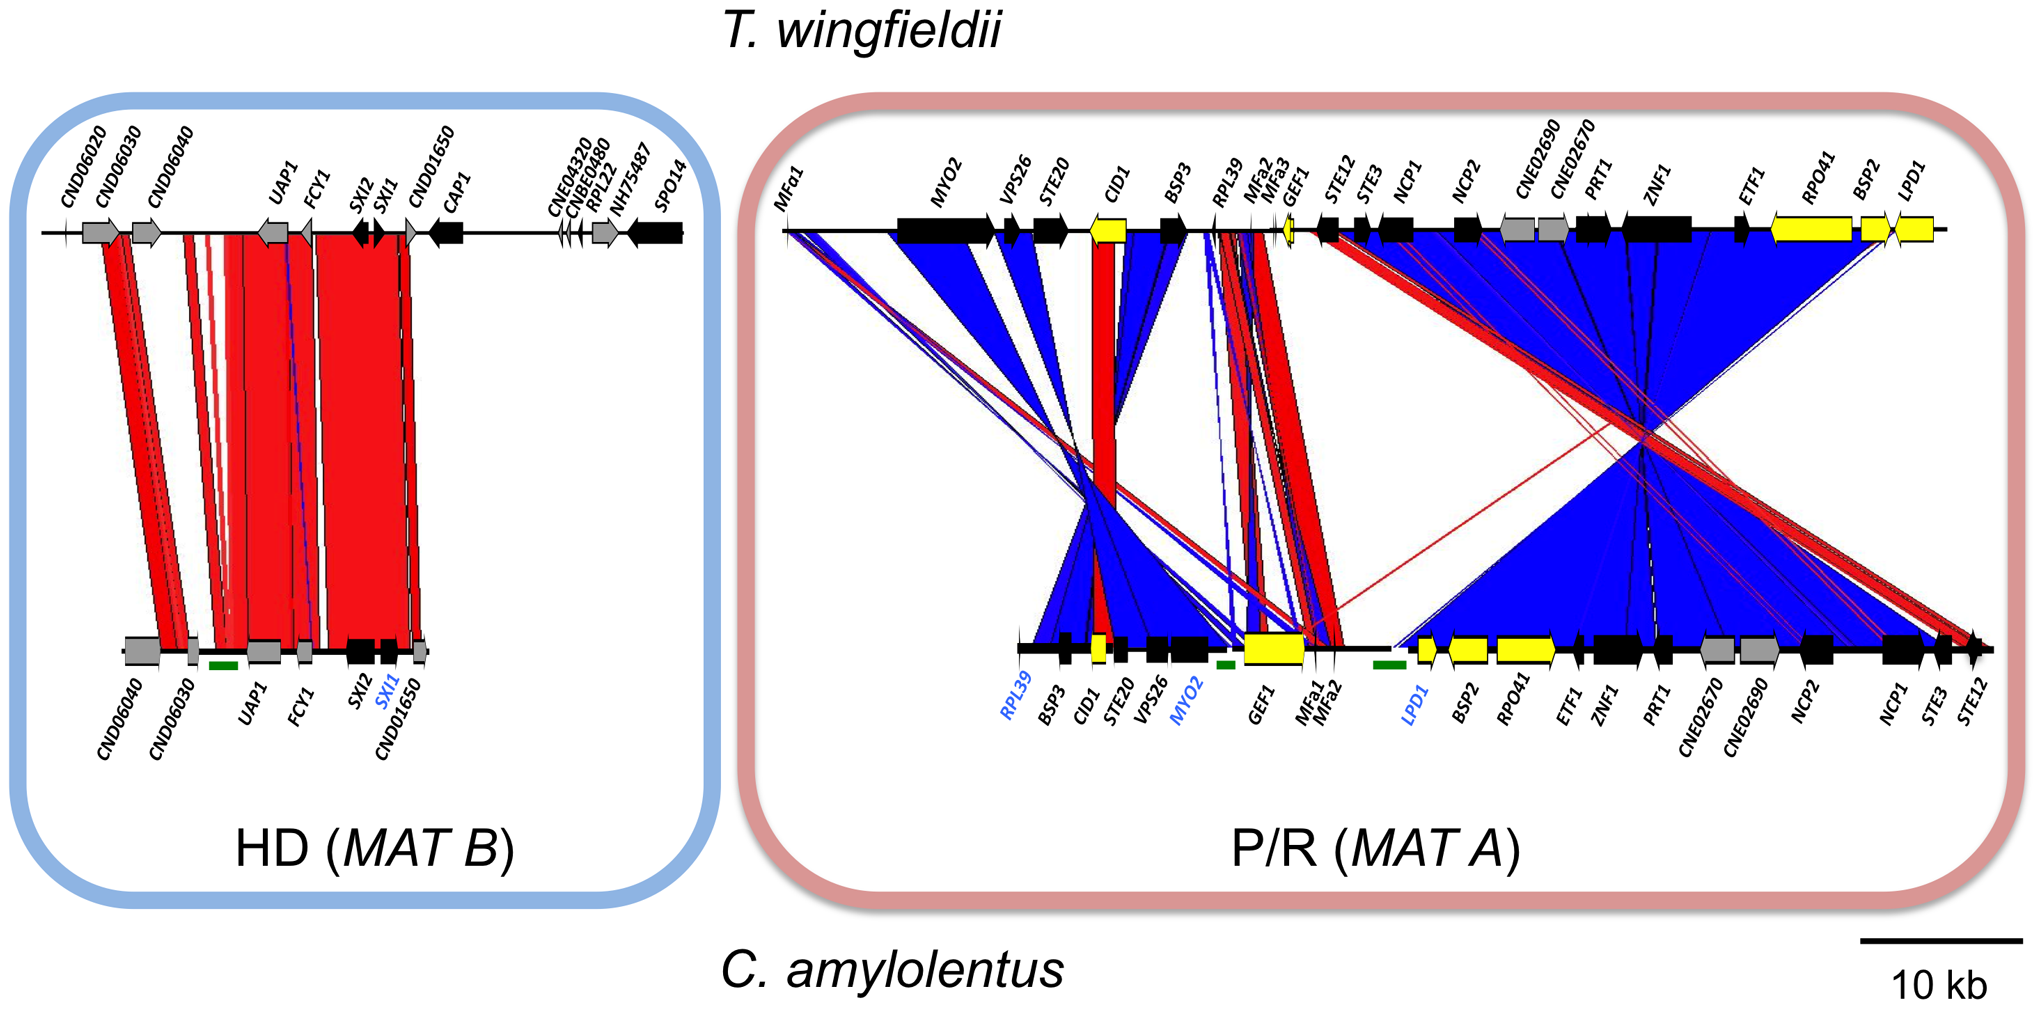 Synteny analysis of <i>MAT</i> sequences from <i>T. wingfieldii</i> and <i>C. amylolentus</i>.